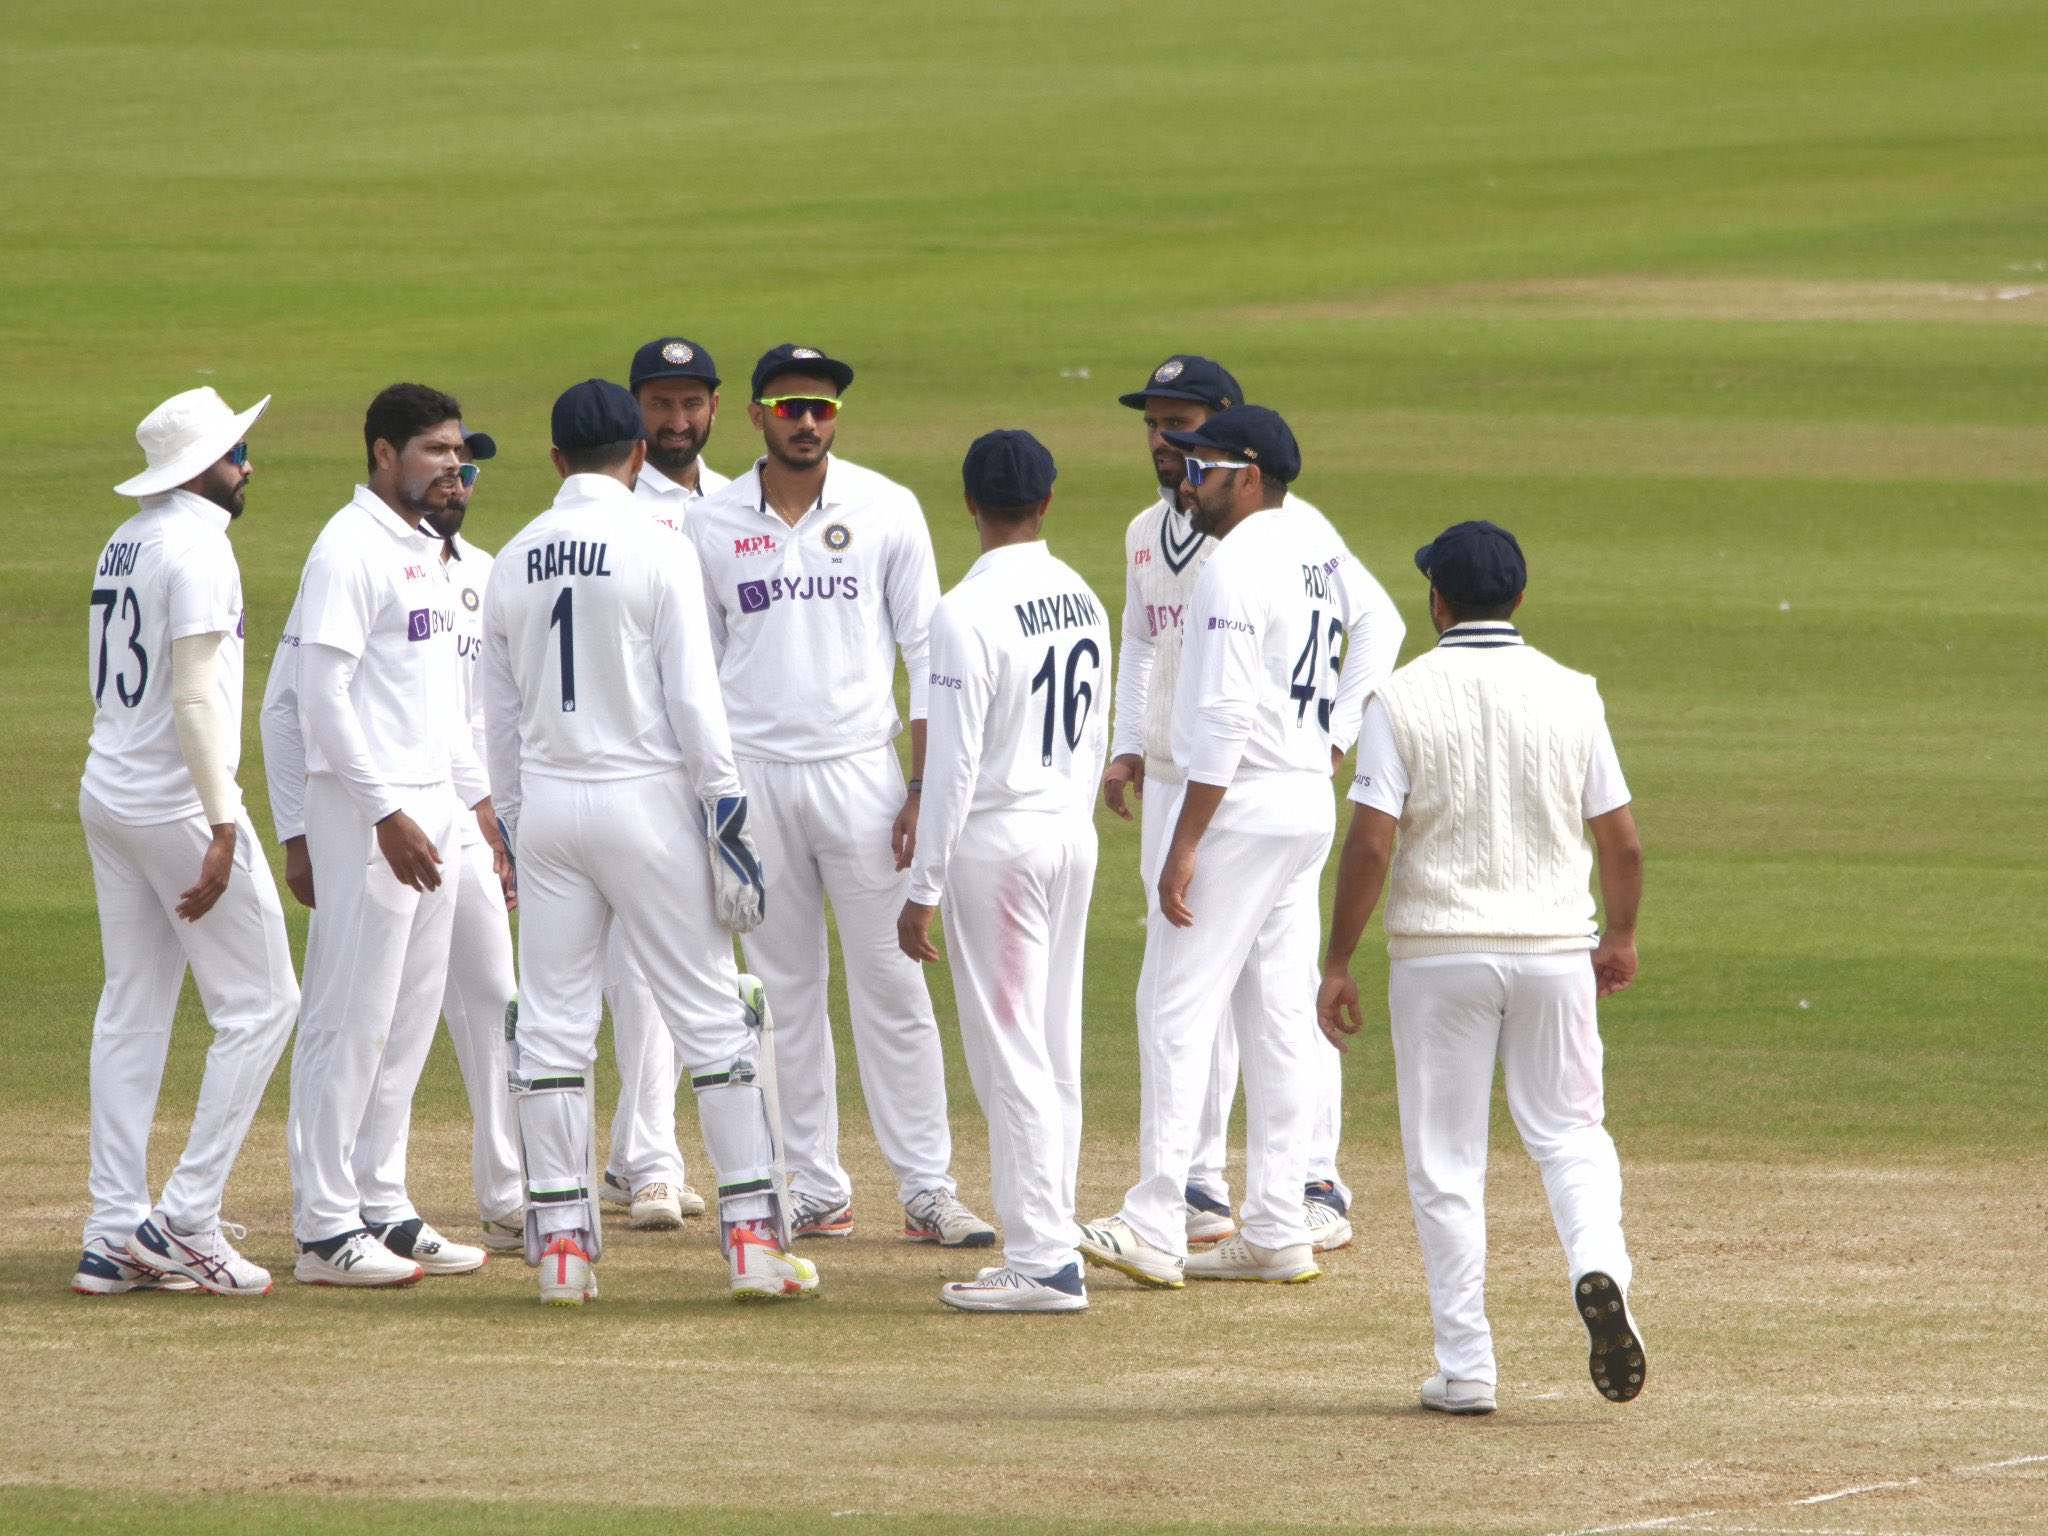 Indians grabbed a lead of 91 runs on Day 2 | BCCI